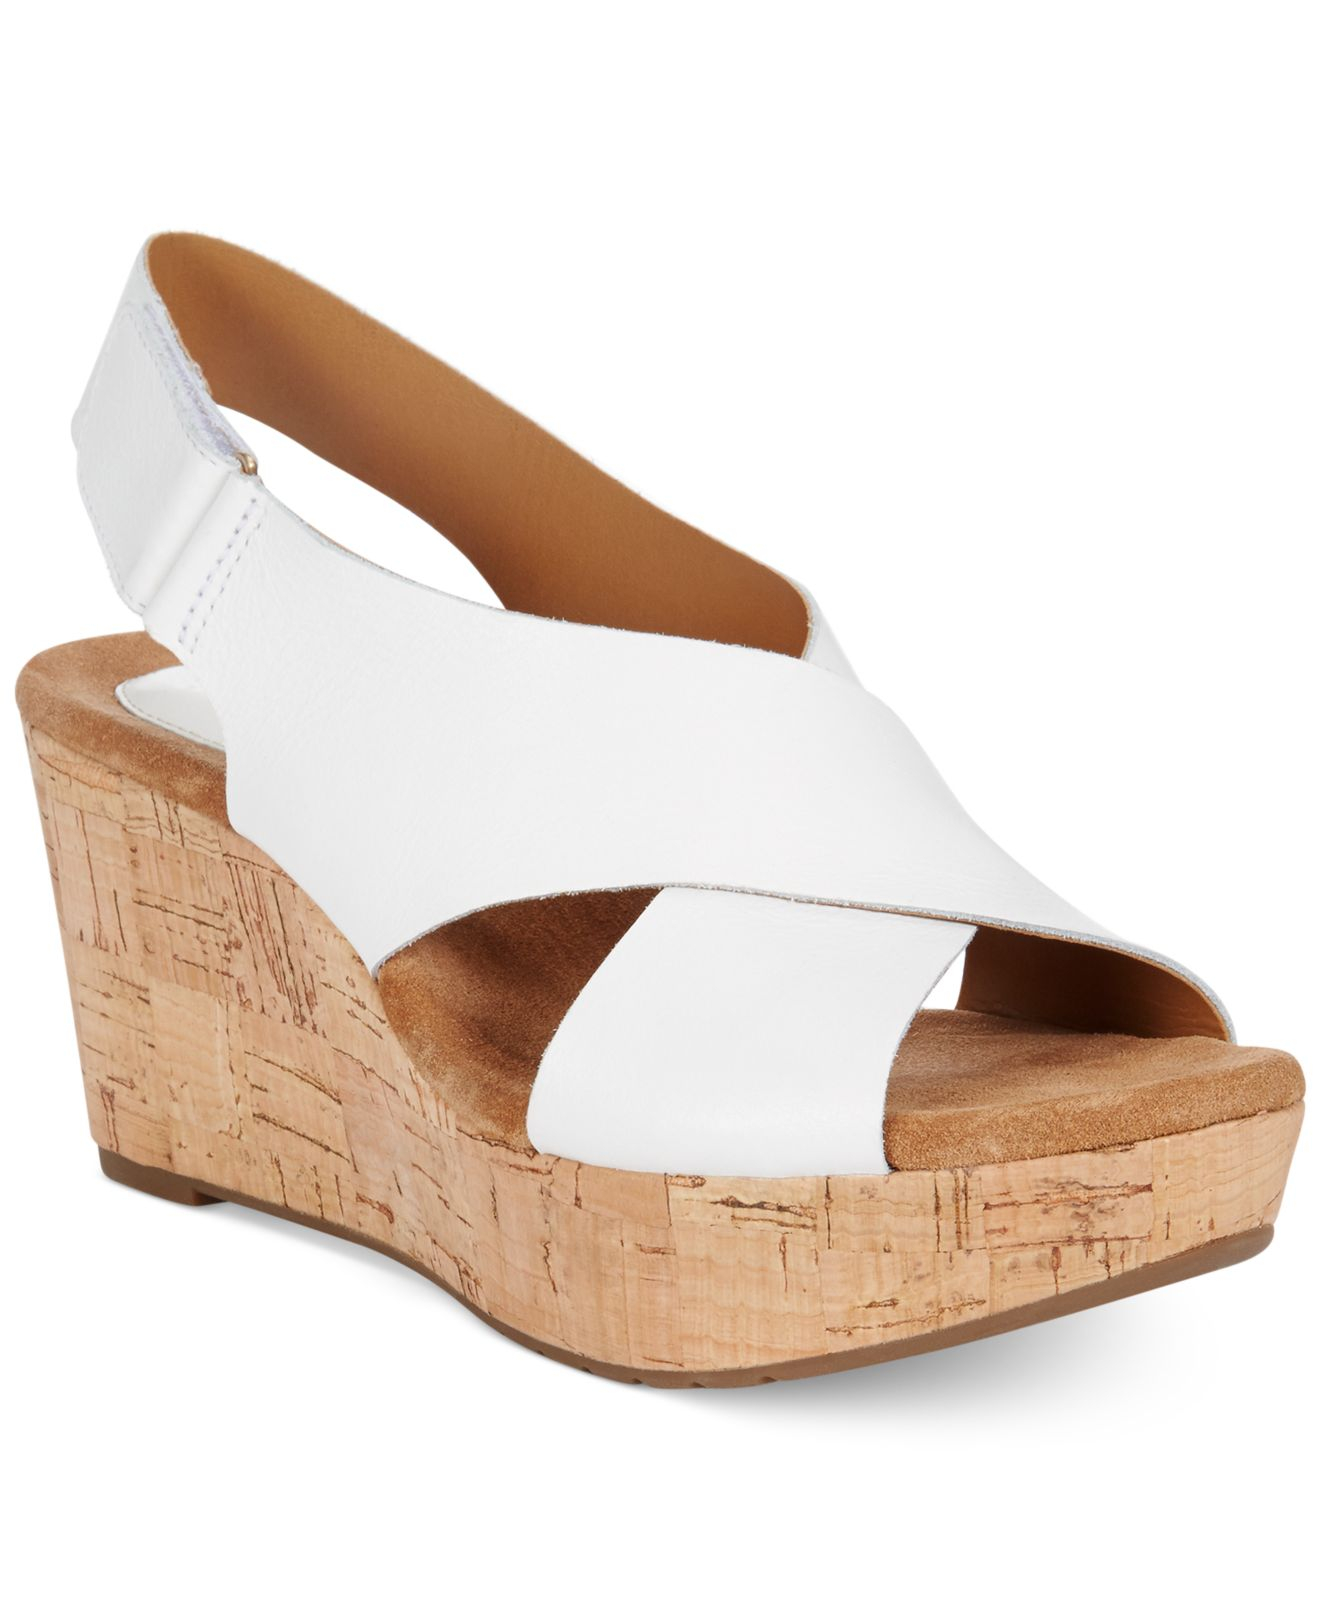 fd2665bad86 Lyst - Clarks Artisan Women s Caslynn Shae Platform Wedge Sandals in ...